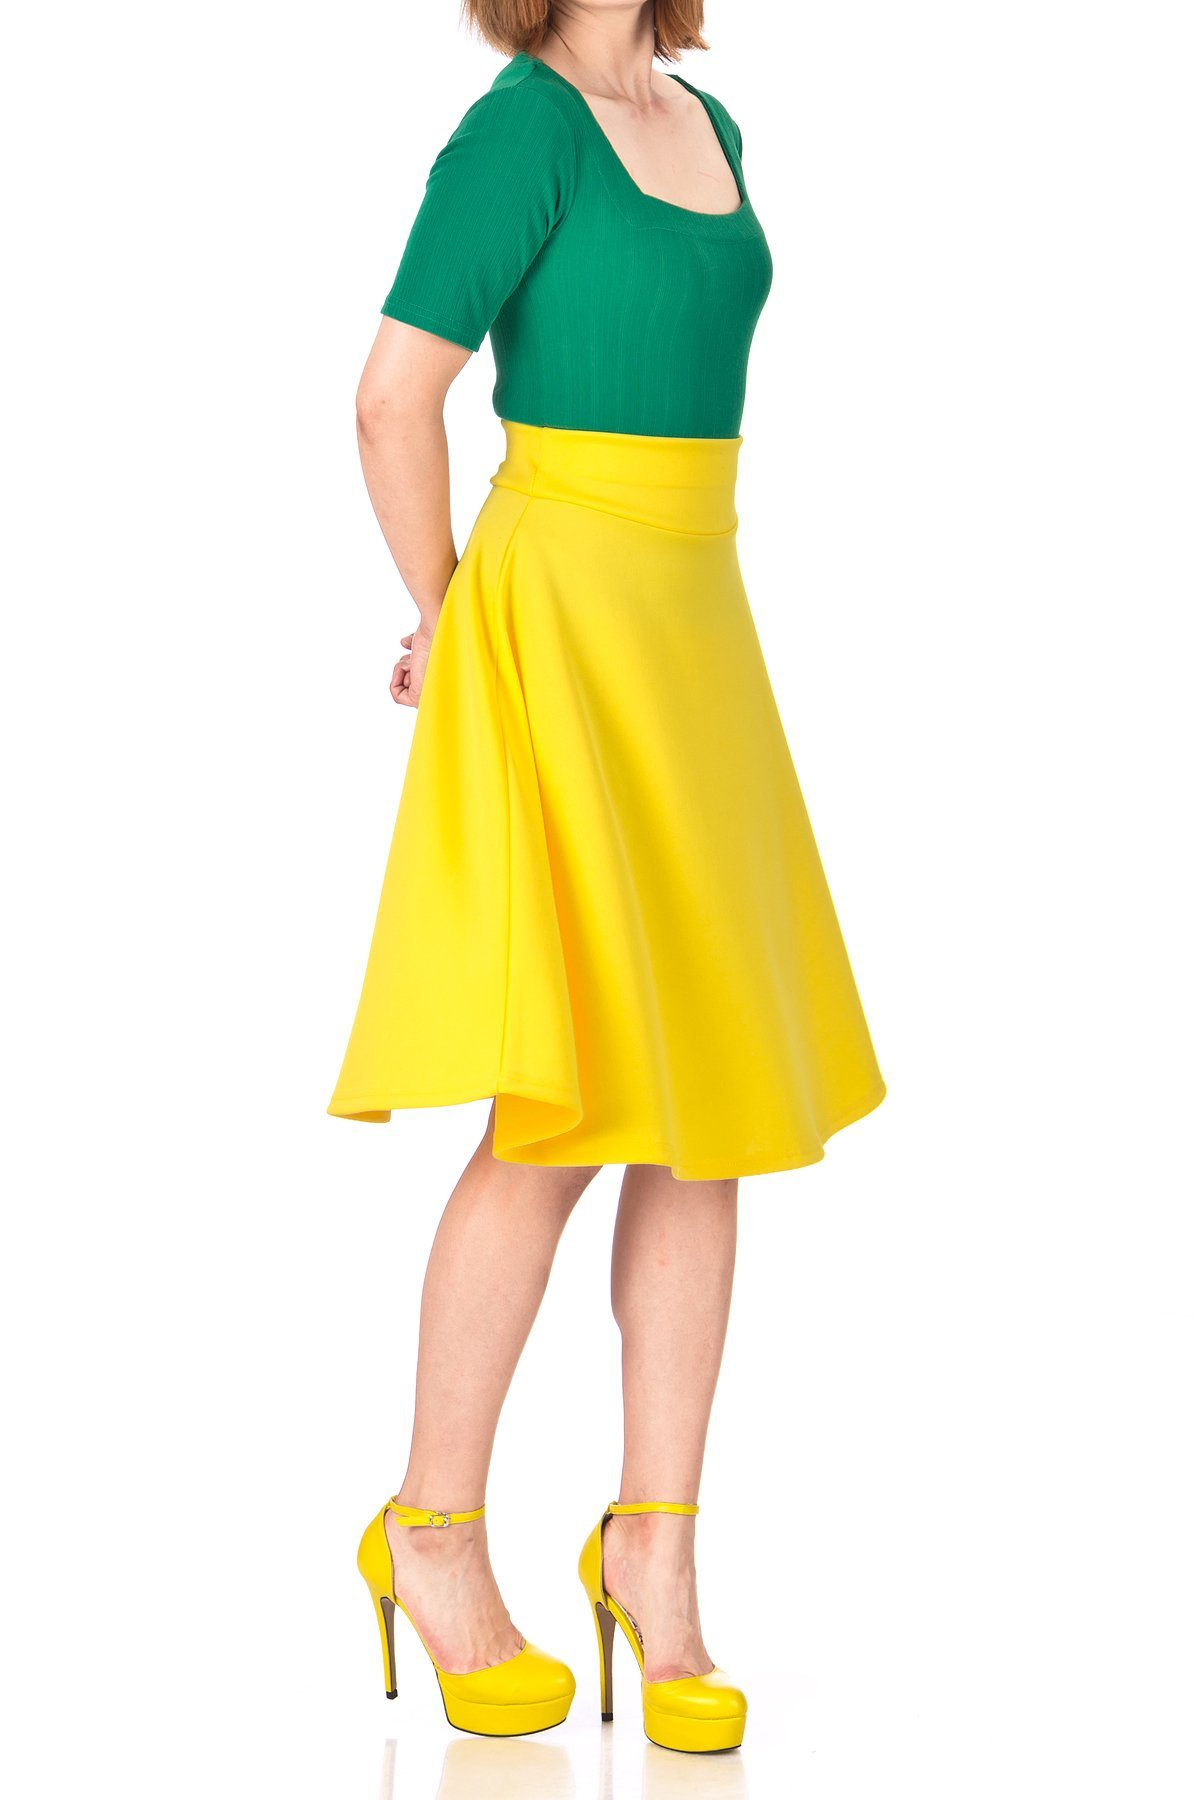 Stunning Wide High Waist A line Full Flared Swing Office Dance Party Casual Circle Skater Midi Skirt Yellow 05